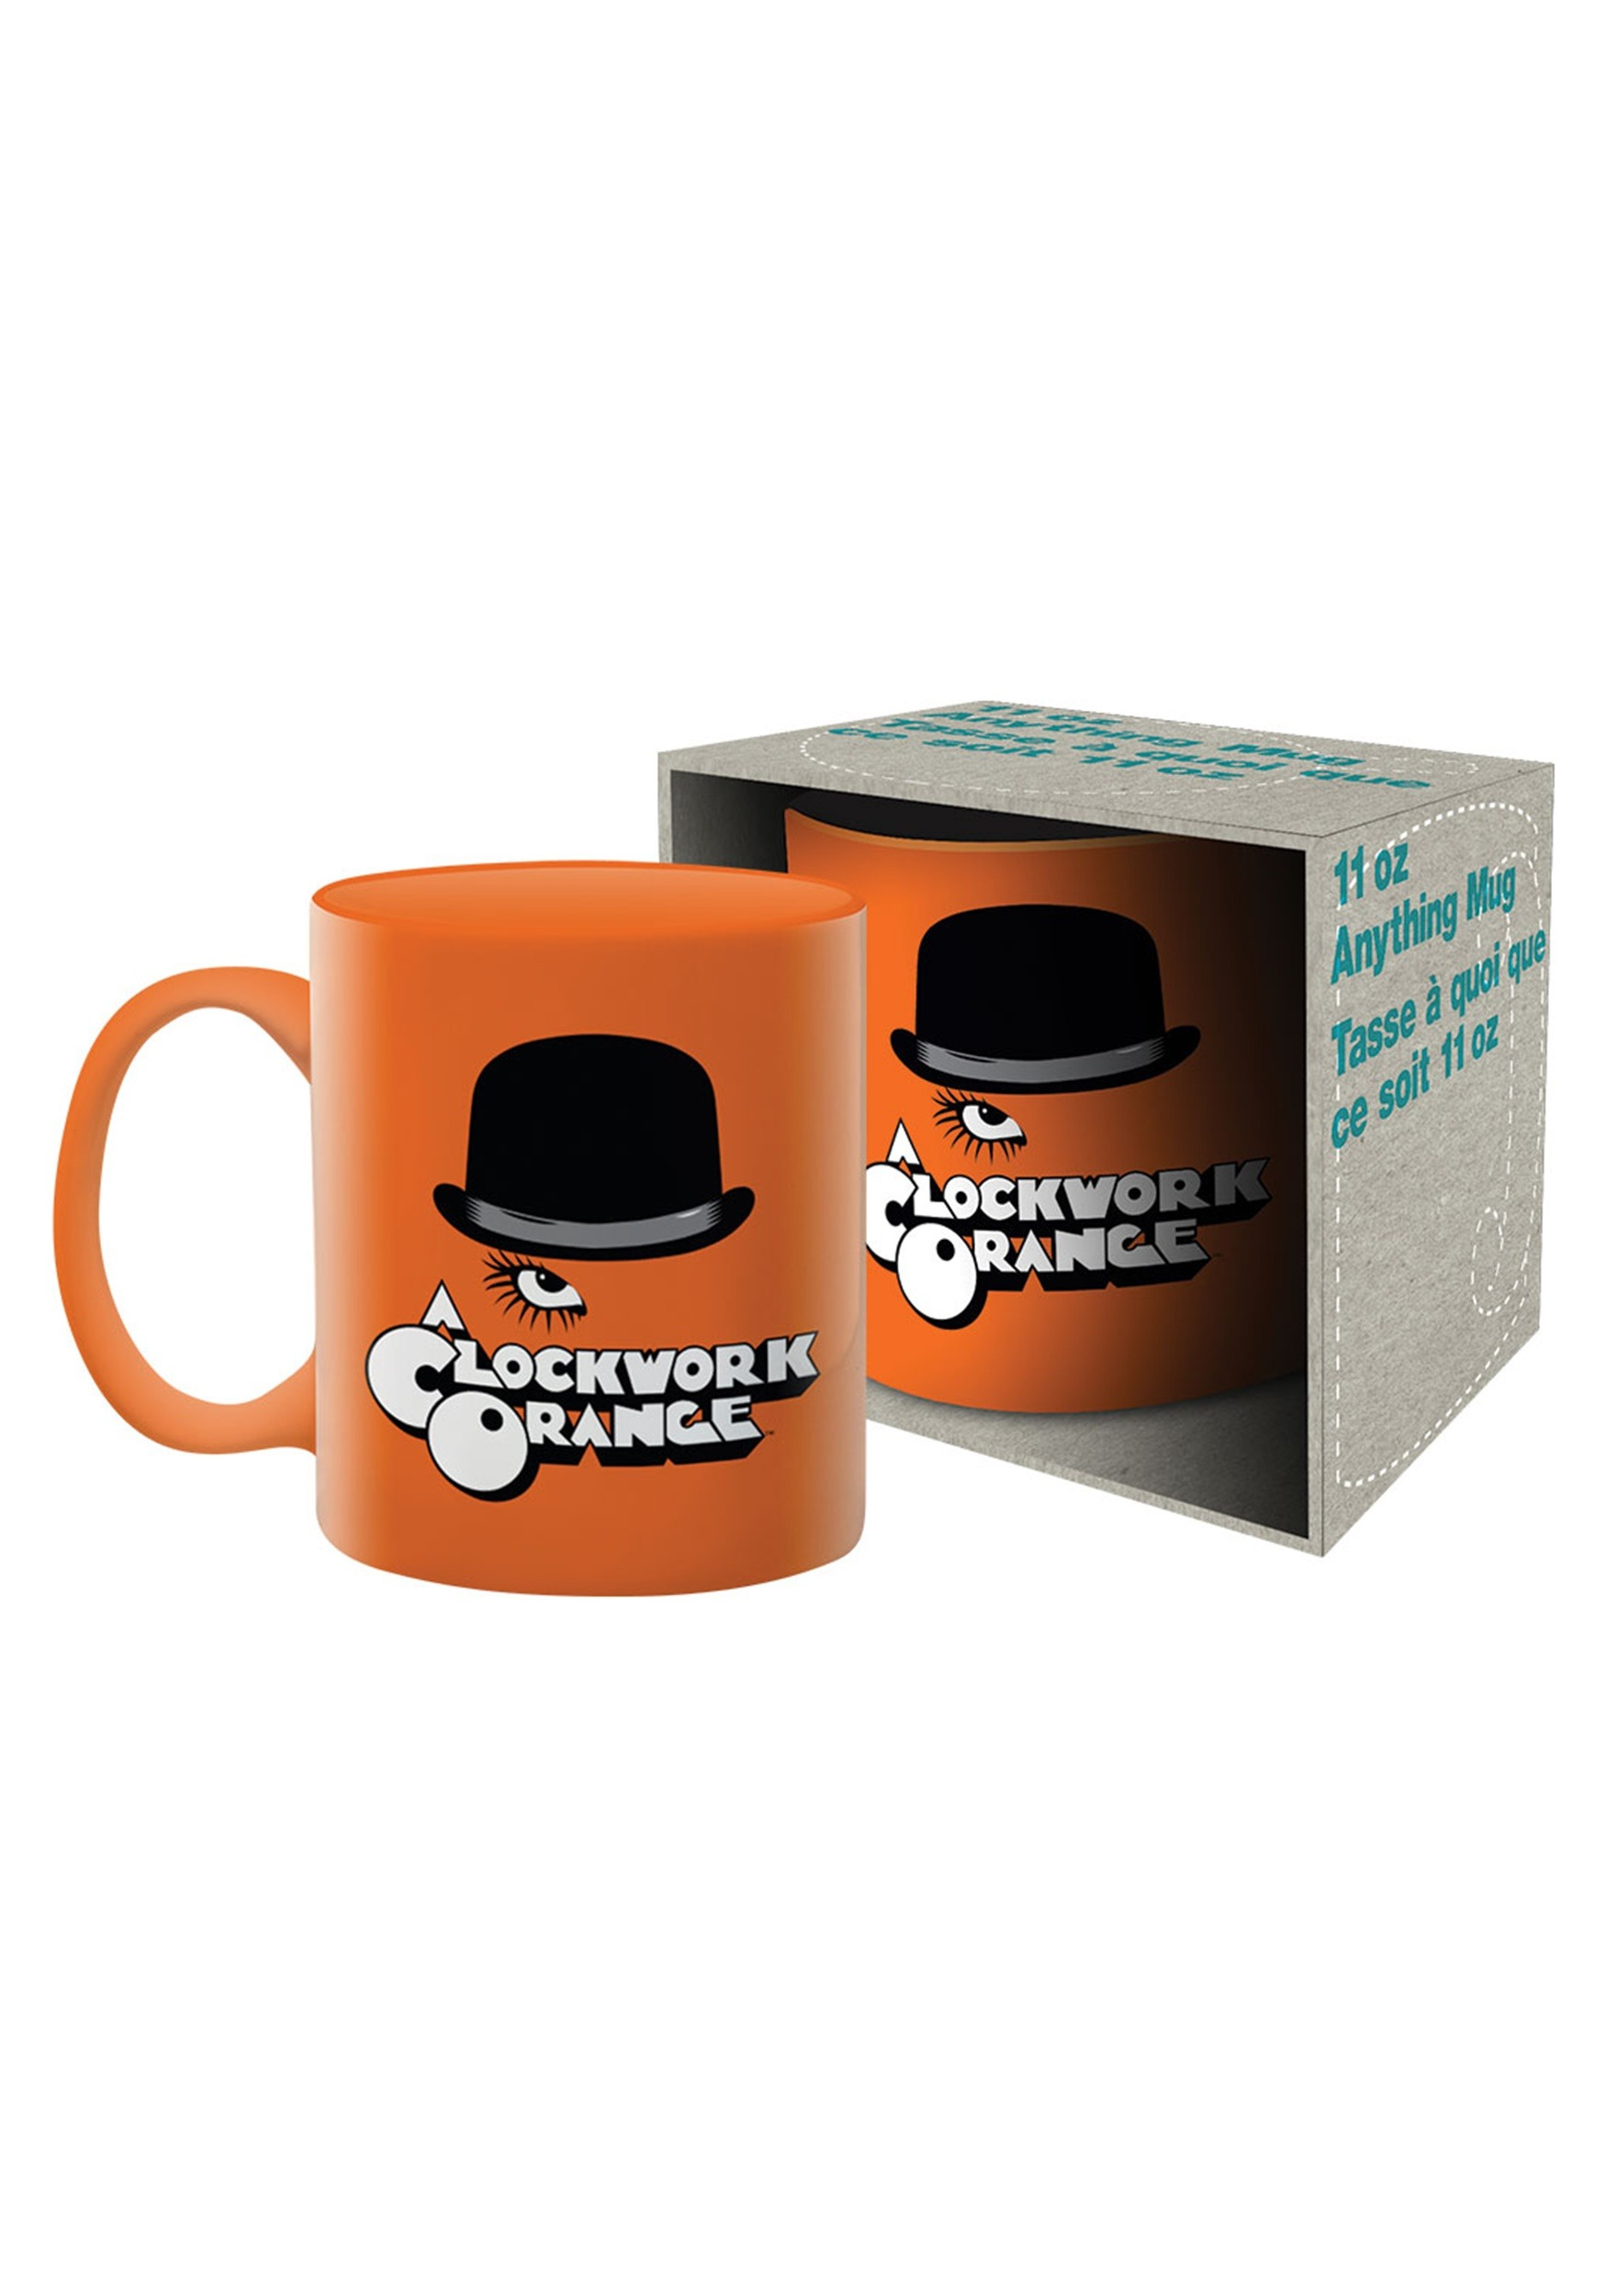 A Clockwork Orange 11oz Coffee Cup